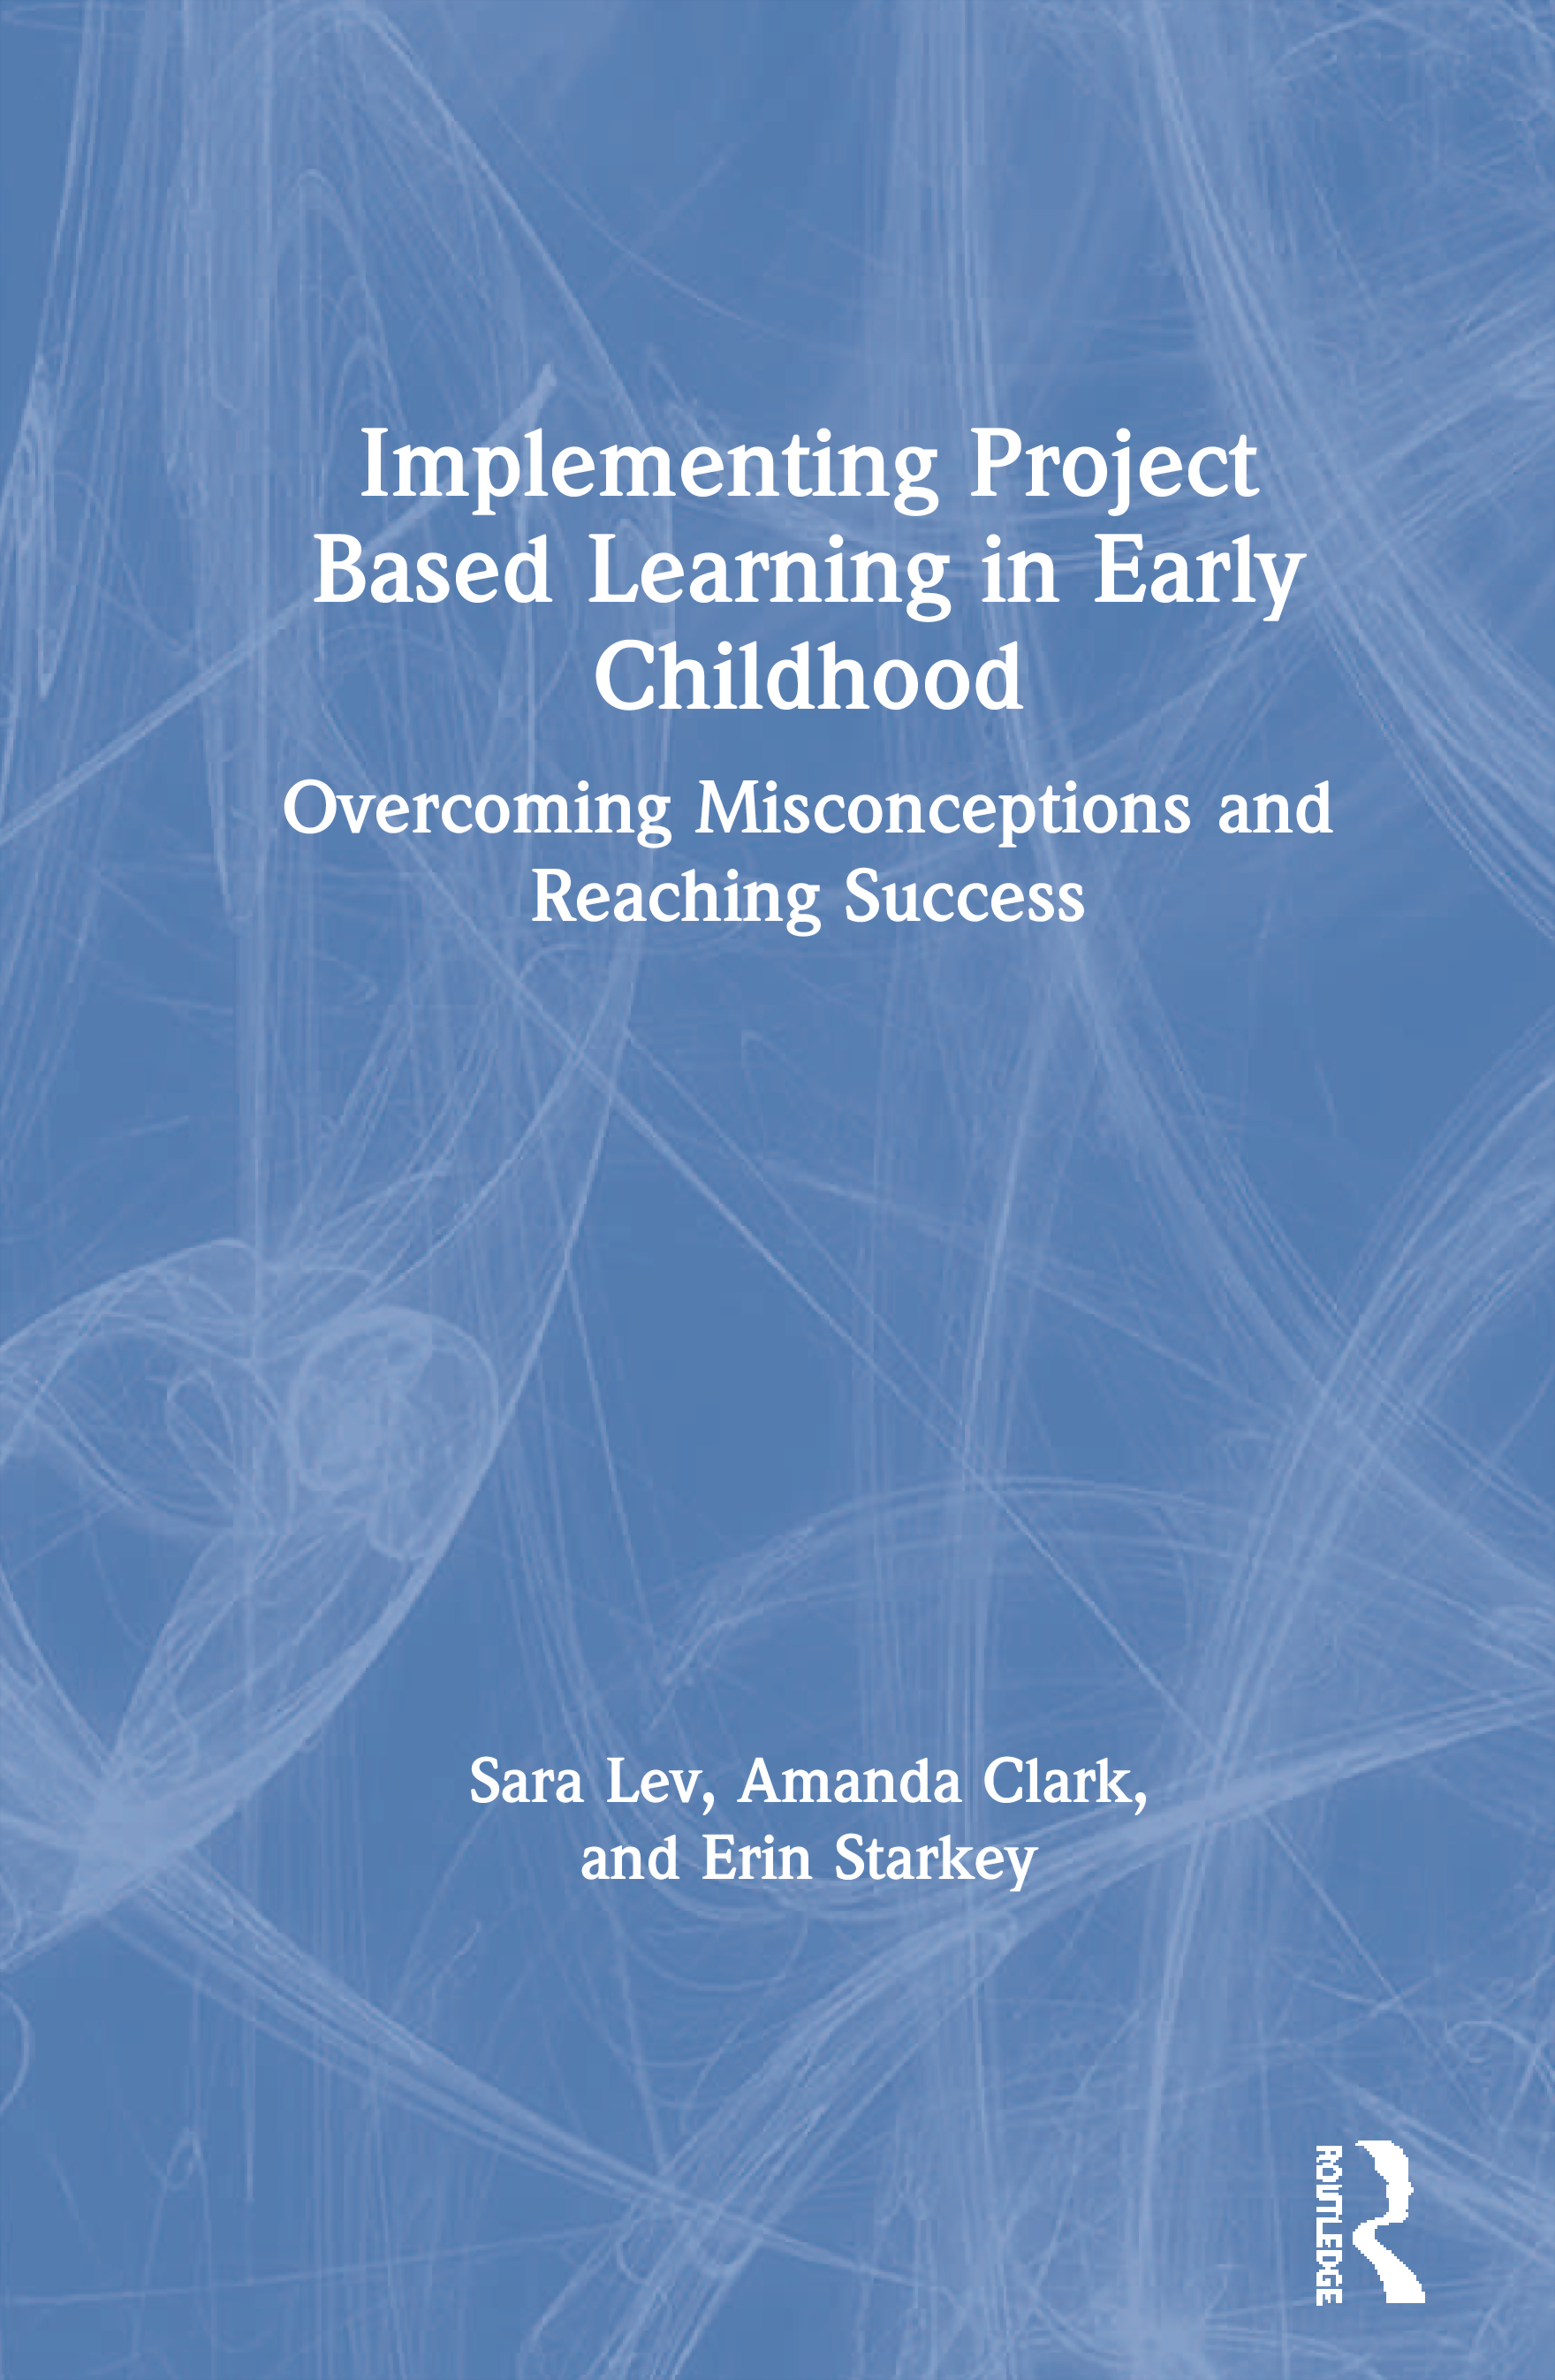 Implementing Project Based Learning in Early Childhood: Overcoming Misconceptions and Reaching Success book cover